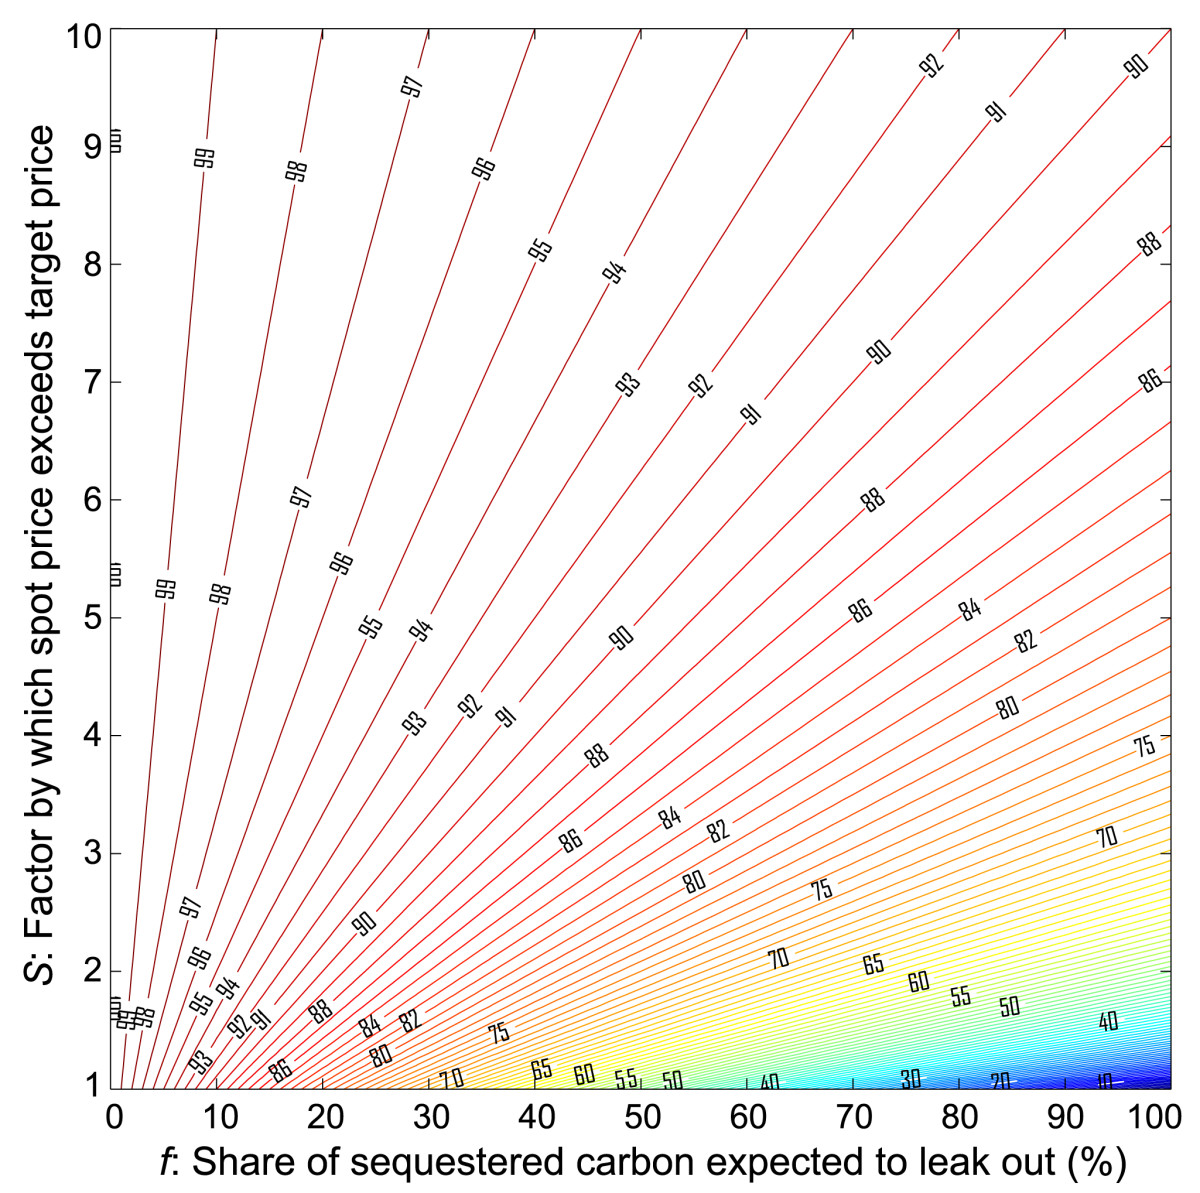 http://static-content.springer.com/image/art%3A10.1186%2F1750-0680-4-3/MediaObjects/13021_2009_Article_38_Fig1_HTML.jpg